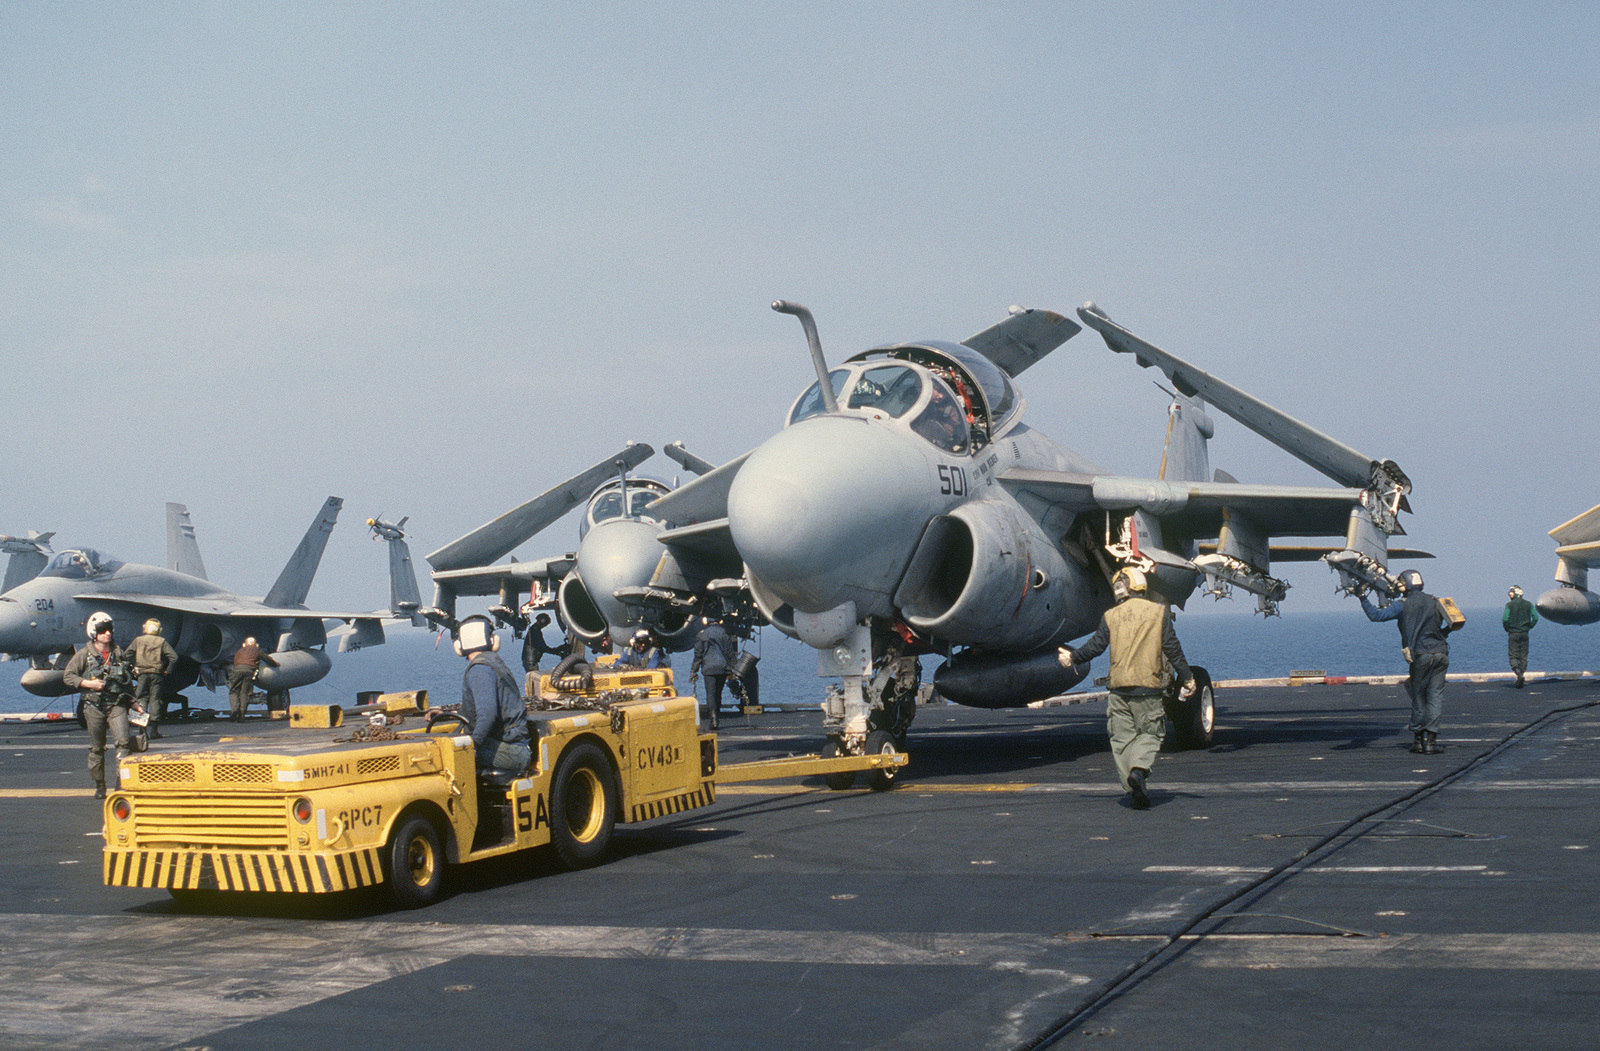 An MD-3A tow tractor is used to park an A-6E Intruder aircraft on the flight deck aboard the aircraft carrier USS CORAL SEA (CV 43) during flight operations off the coast of Libya